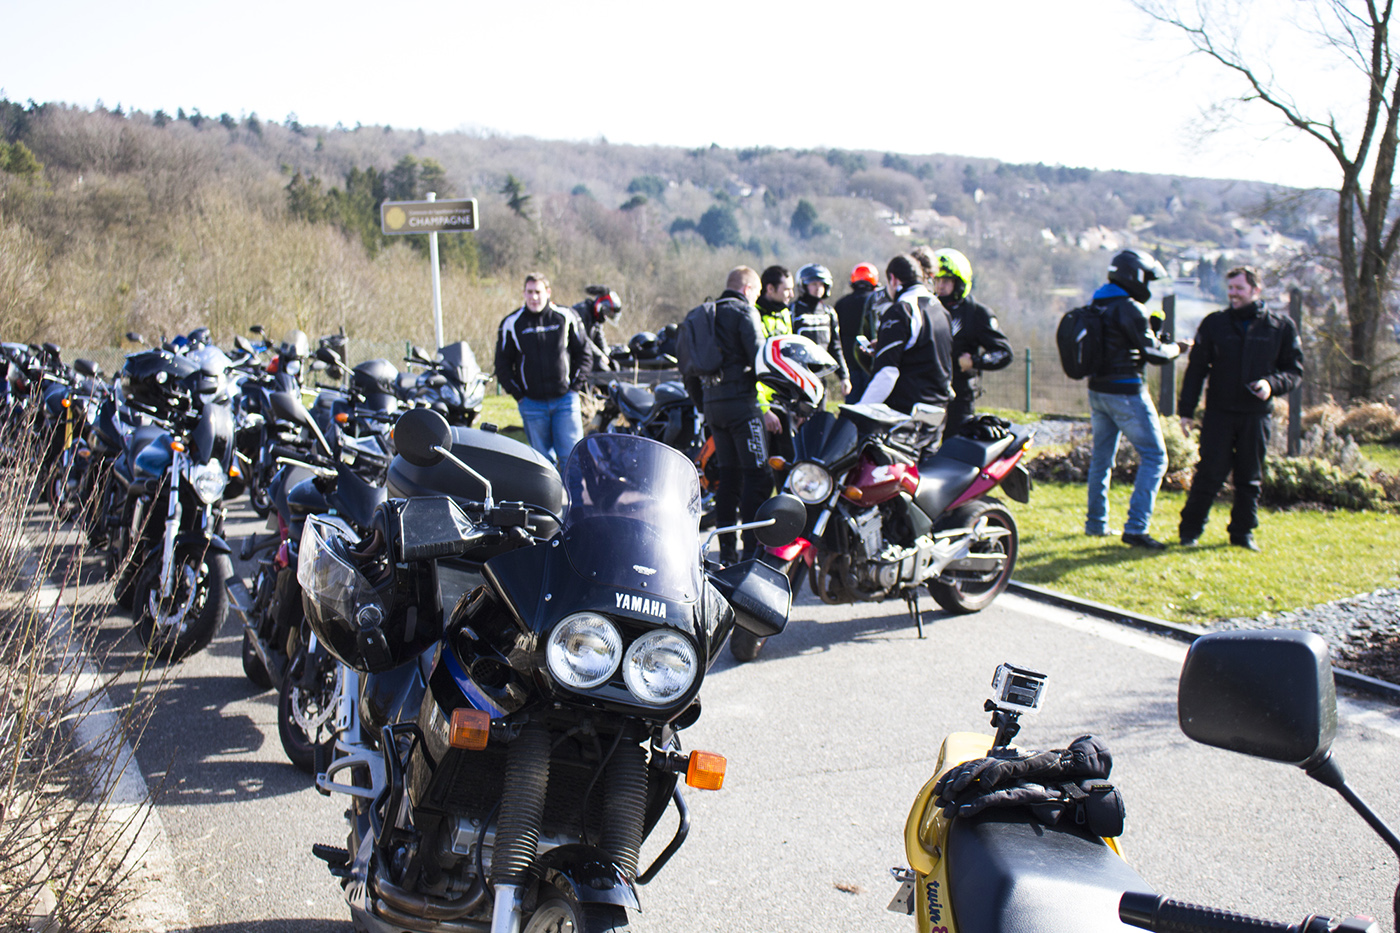 Rencontre Moto Reims Forum Motovlog